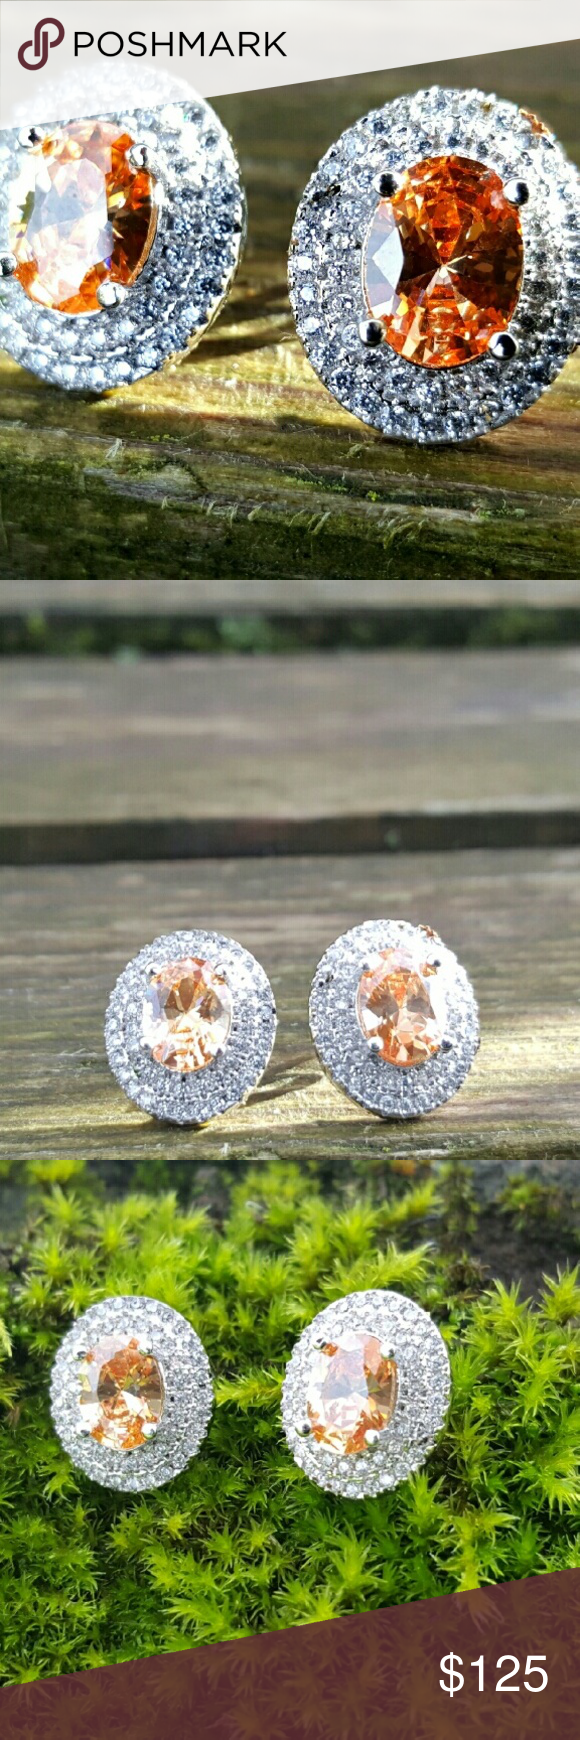 in sterling padparadscha leverback created shipping watches sapphire tgw overstock com carat product jewelry orange free over silver on earrings orders